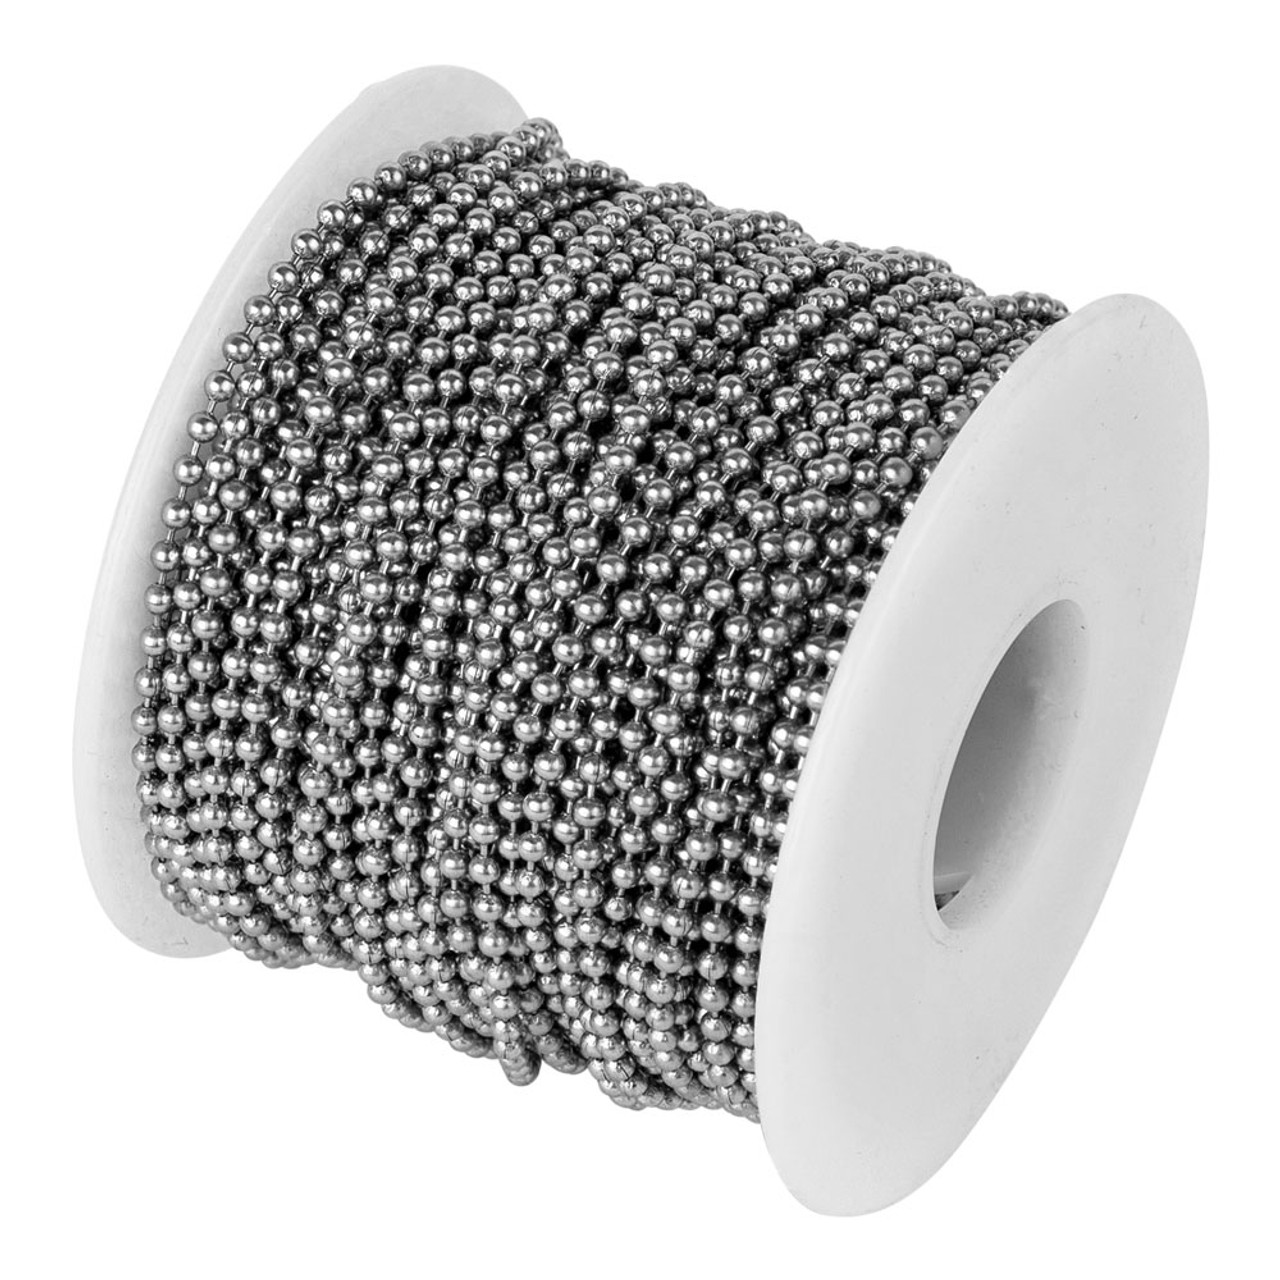 #3 Stainless Steel Ball Chain Spool made in the USA. These rolls of 2.4mm diameter stainless steel bead chain are the best way to purchase this chain at low factory direct prices. They come in lengths of 100 feet to 5000 feet and if you need more just ask.